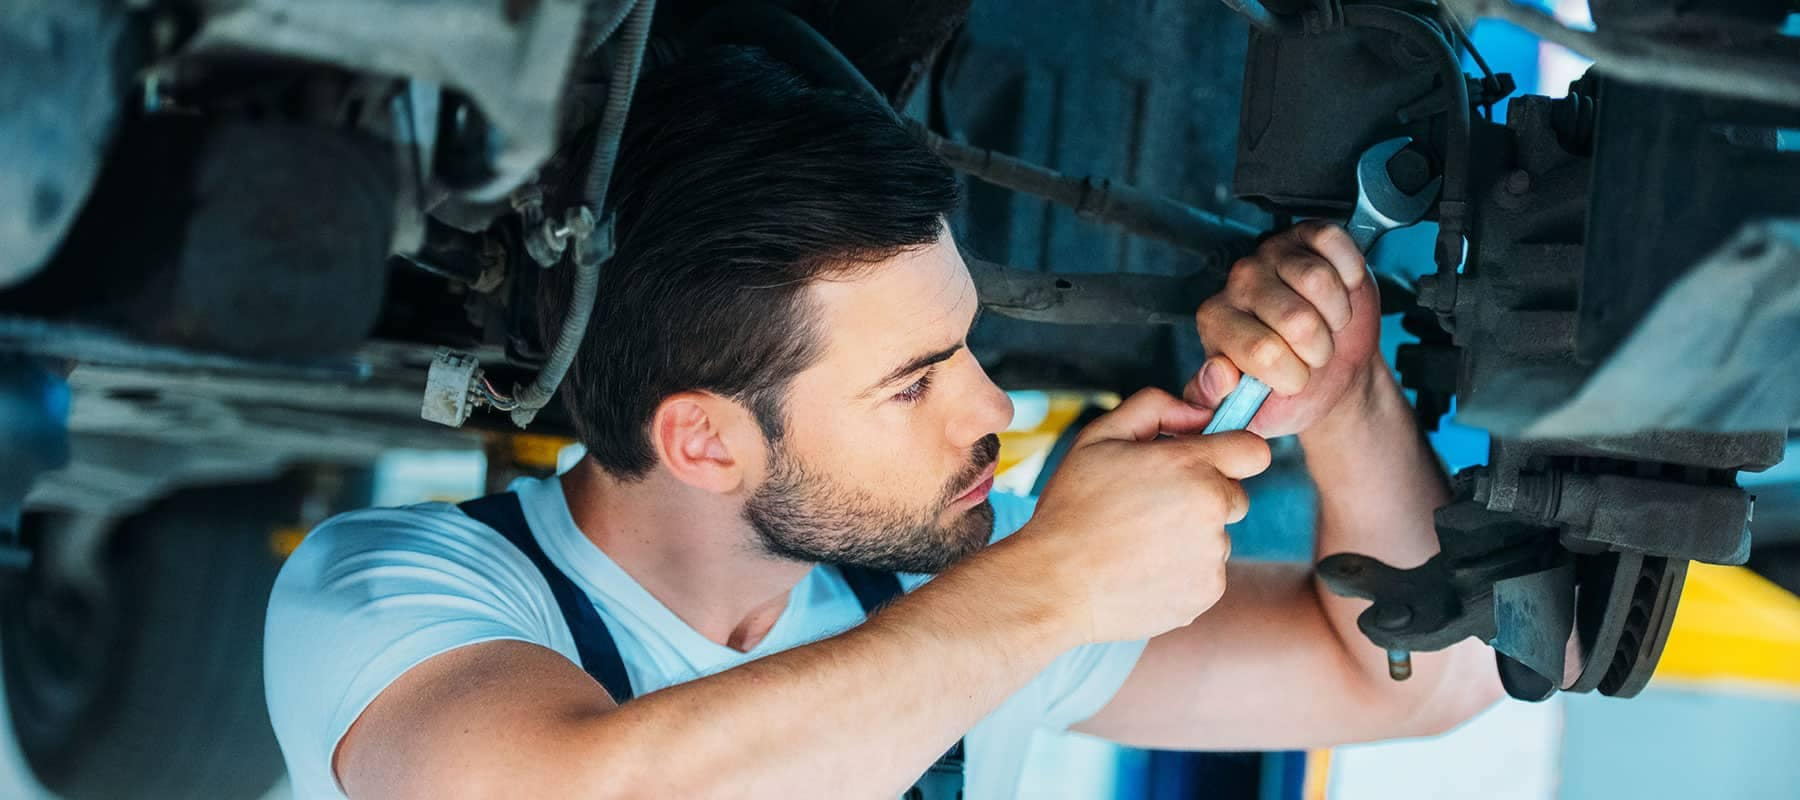 Mechanic-With-Wrench